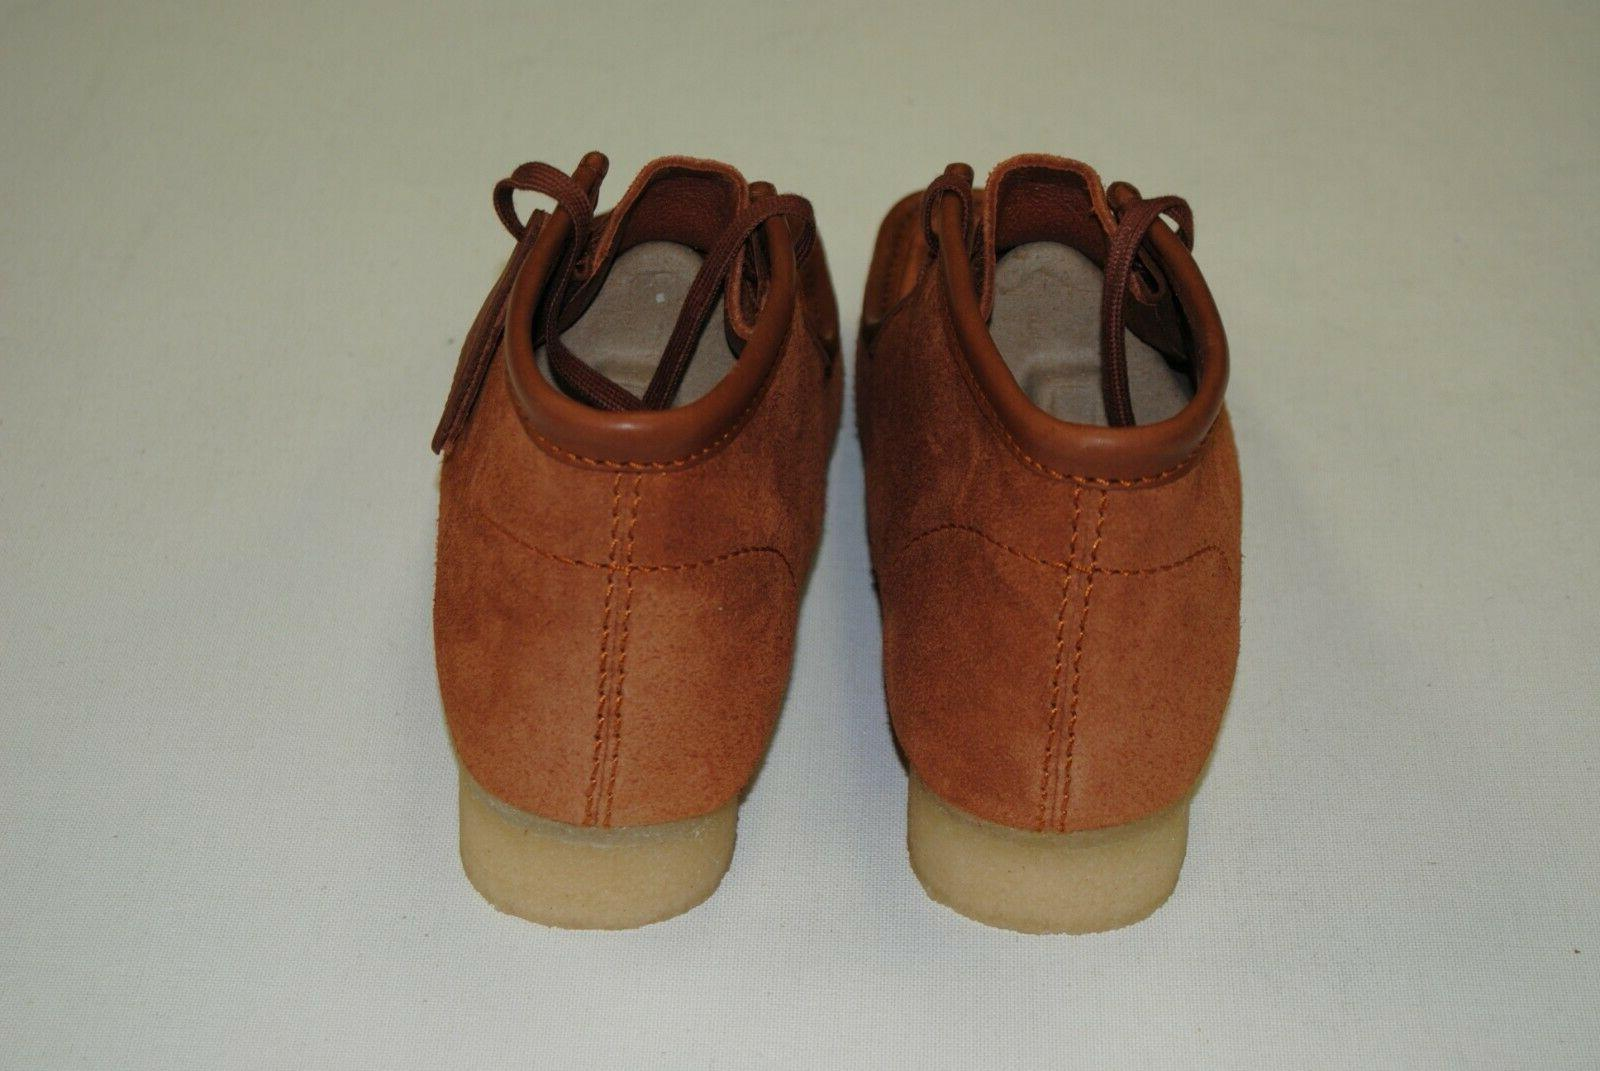 NEW WALLABEE TAN HAIRY SUEDE